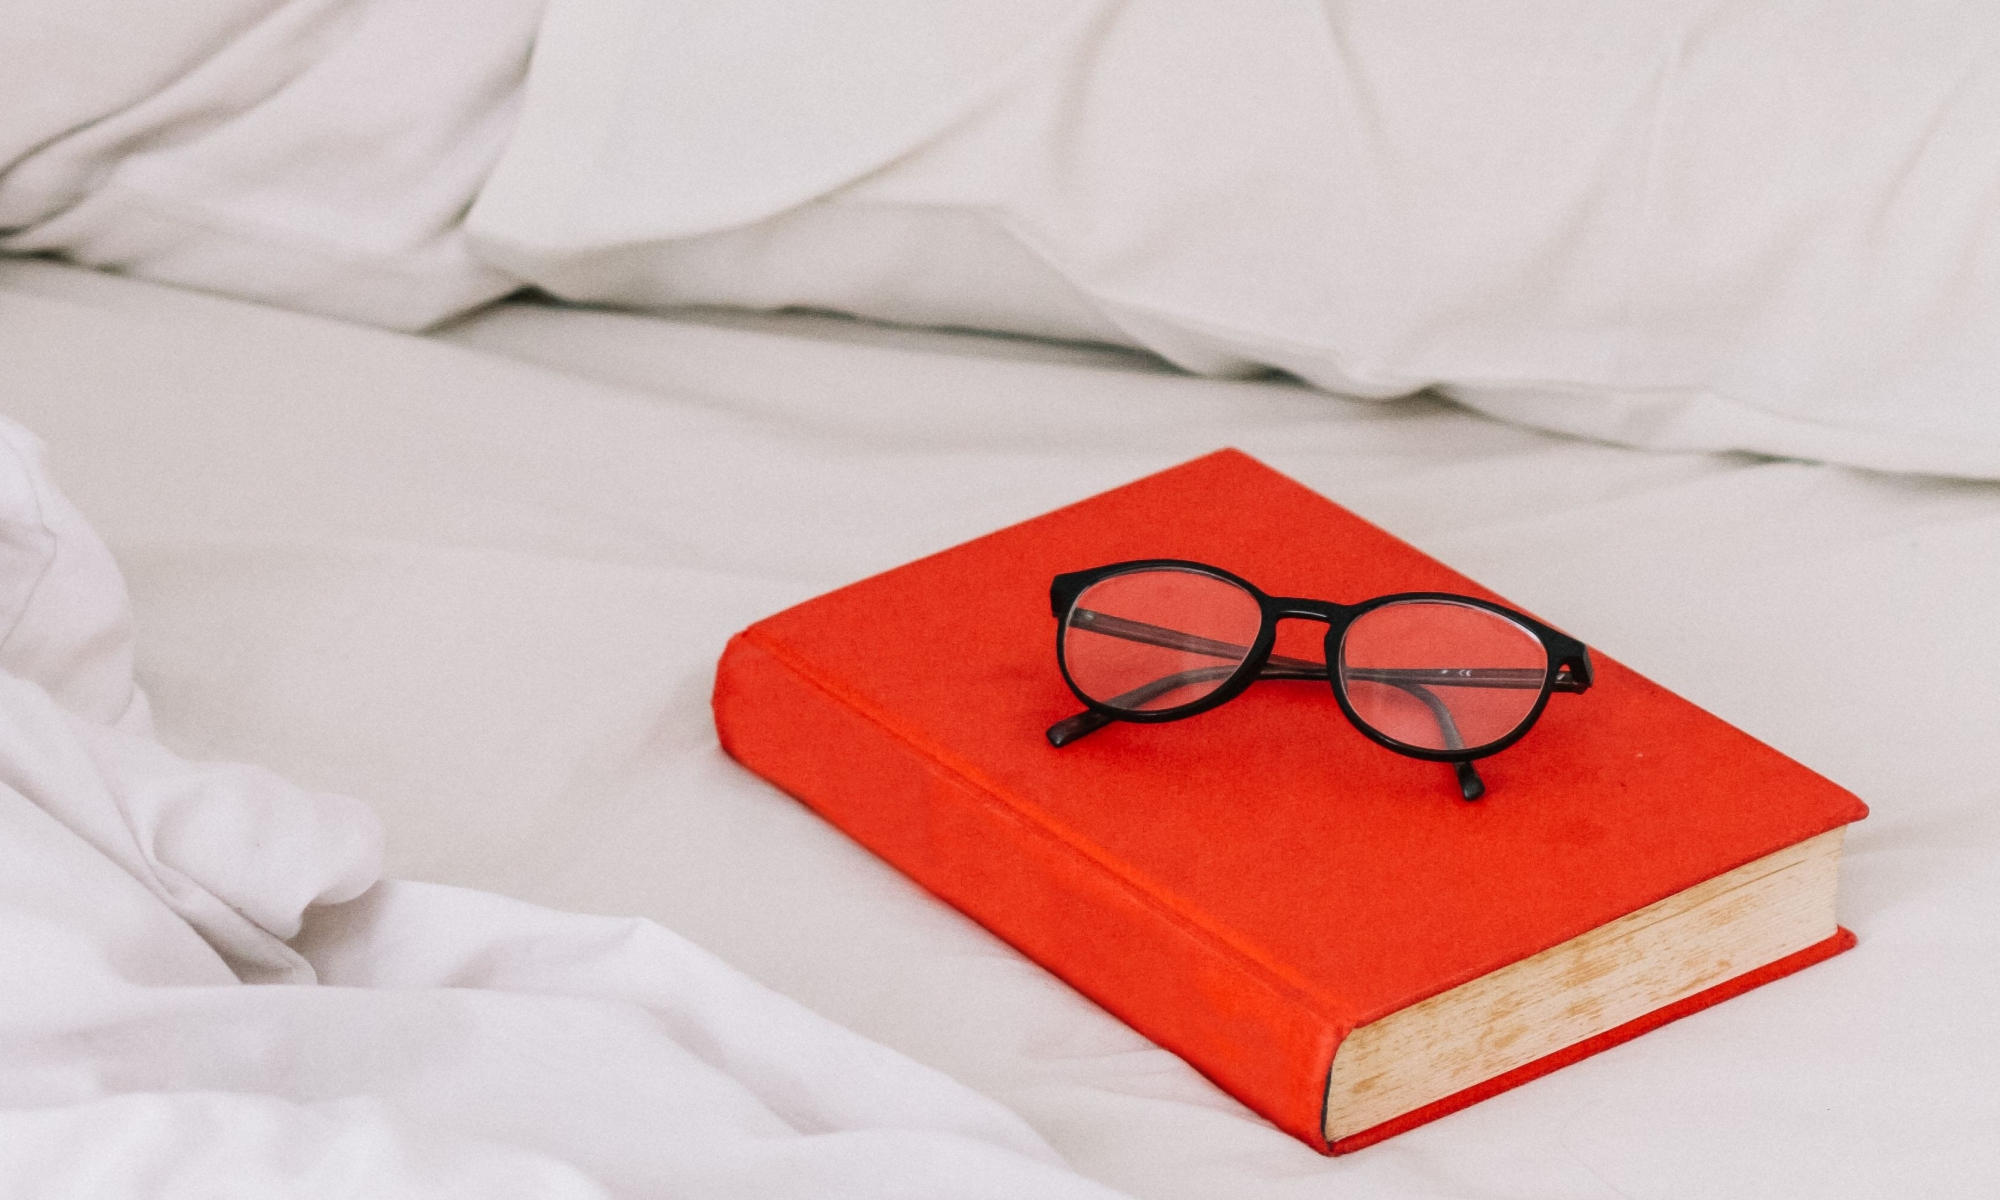 A red book with glasses on top, sitting on white bed sheets